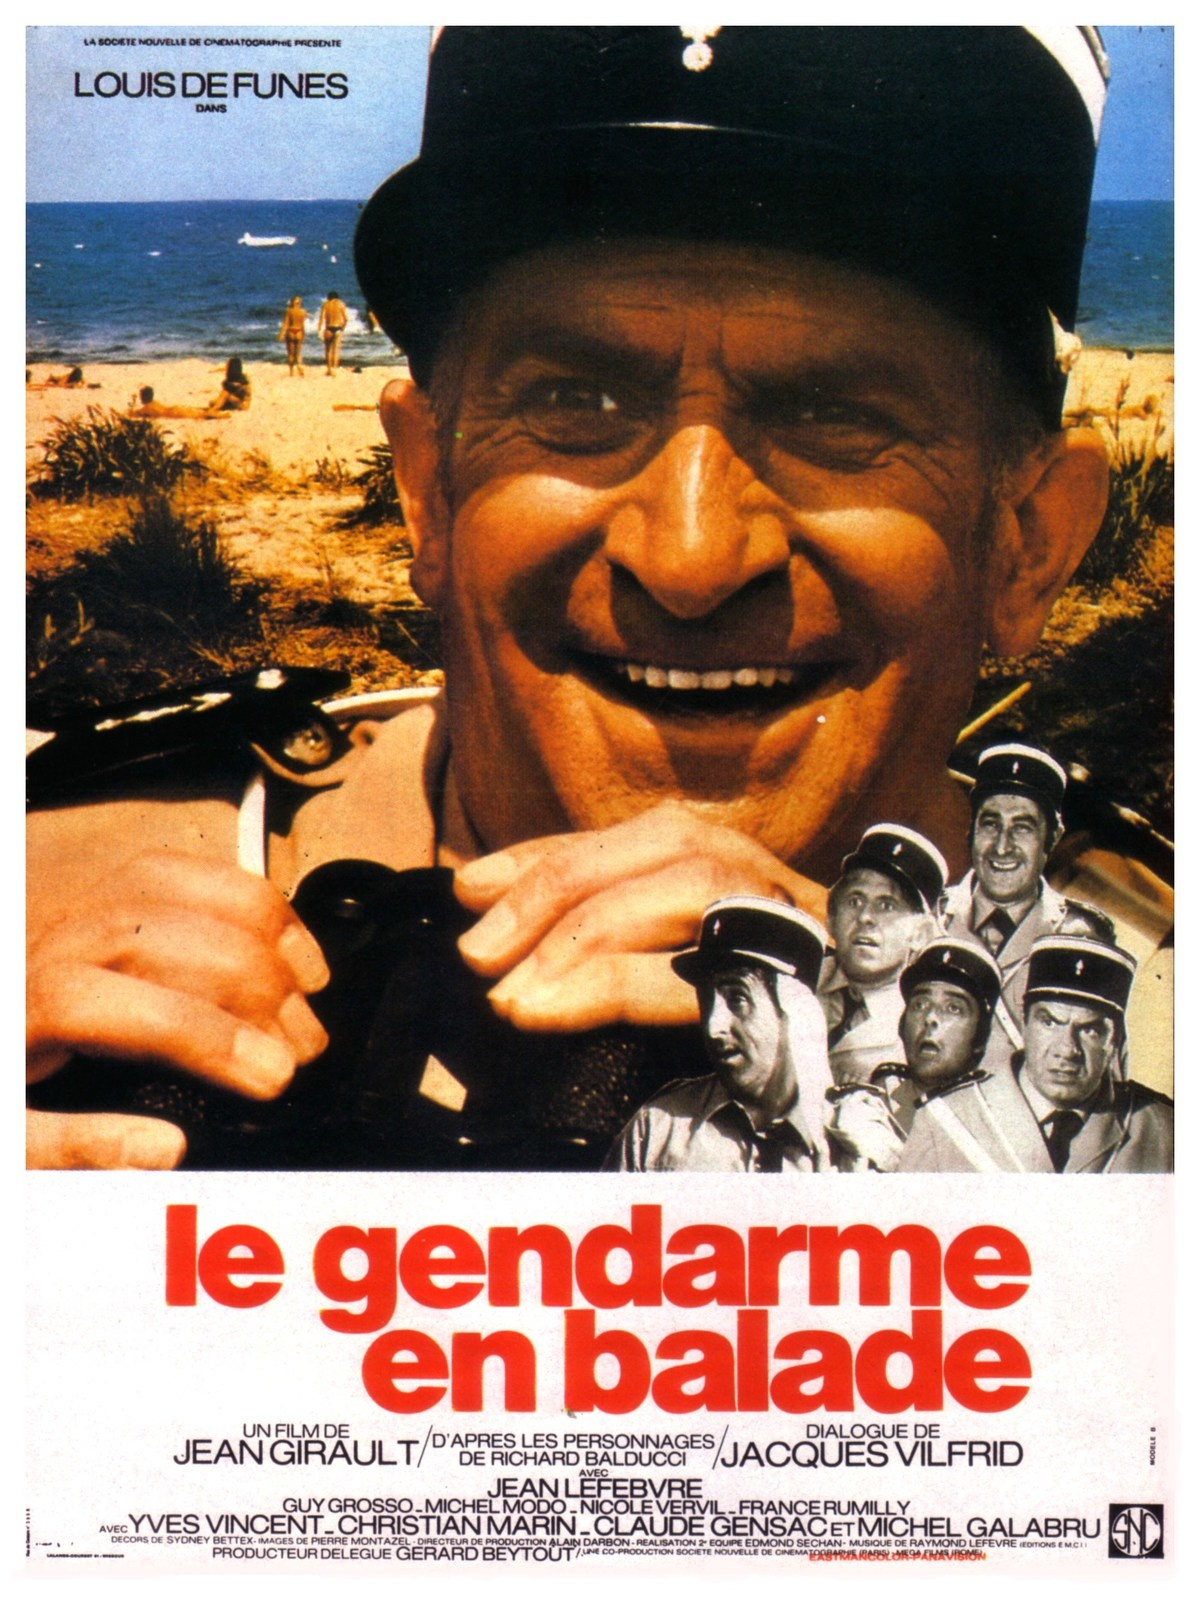 Louis de funes gratuit streaming jo film